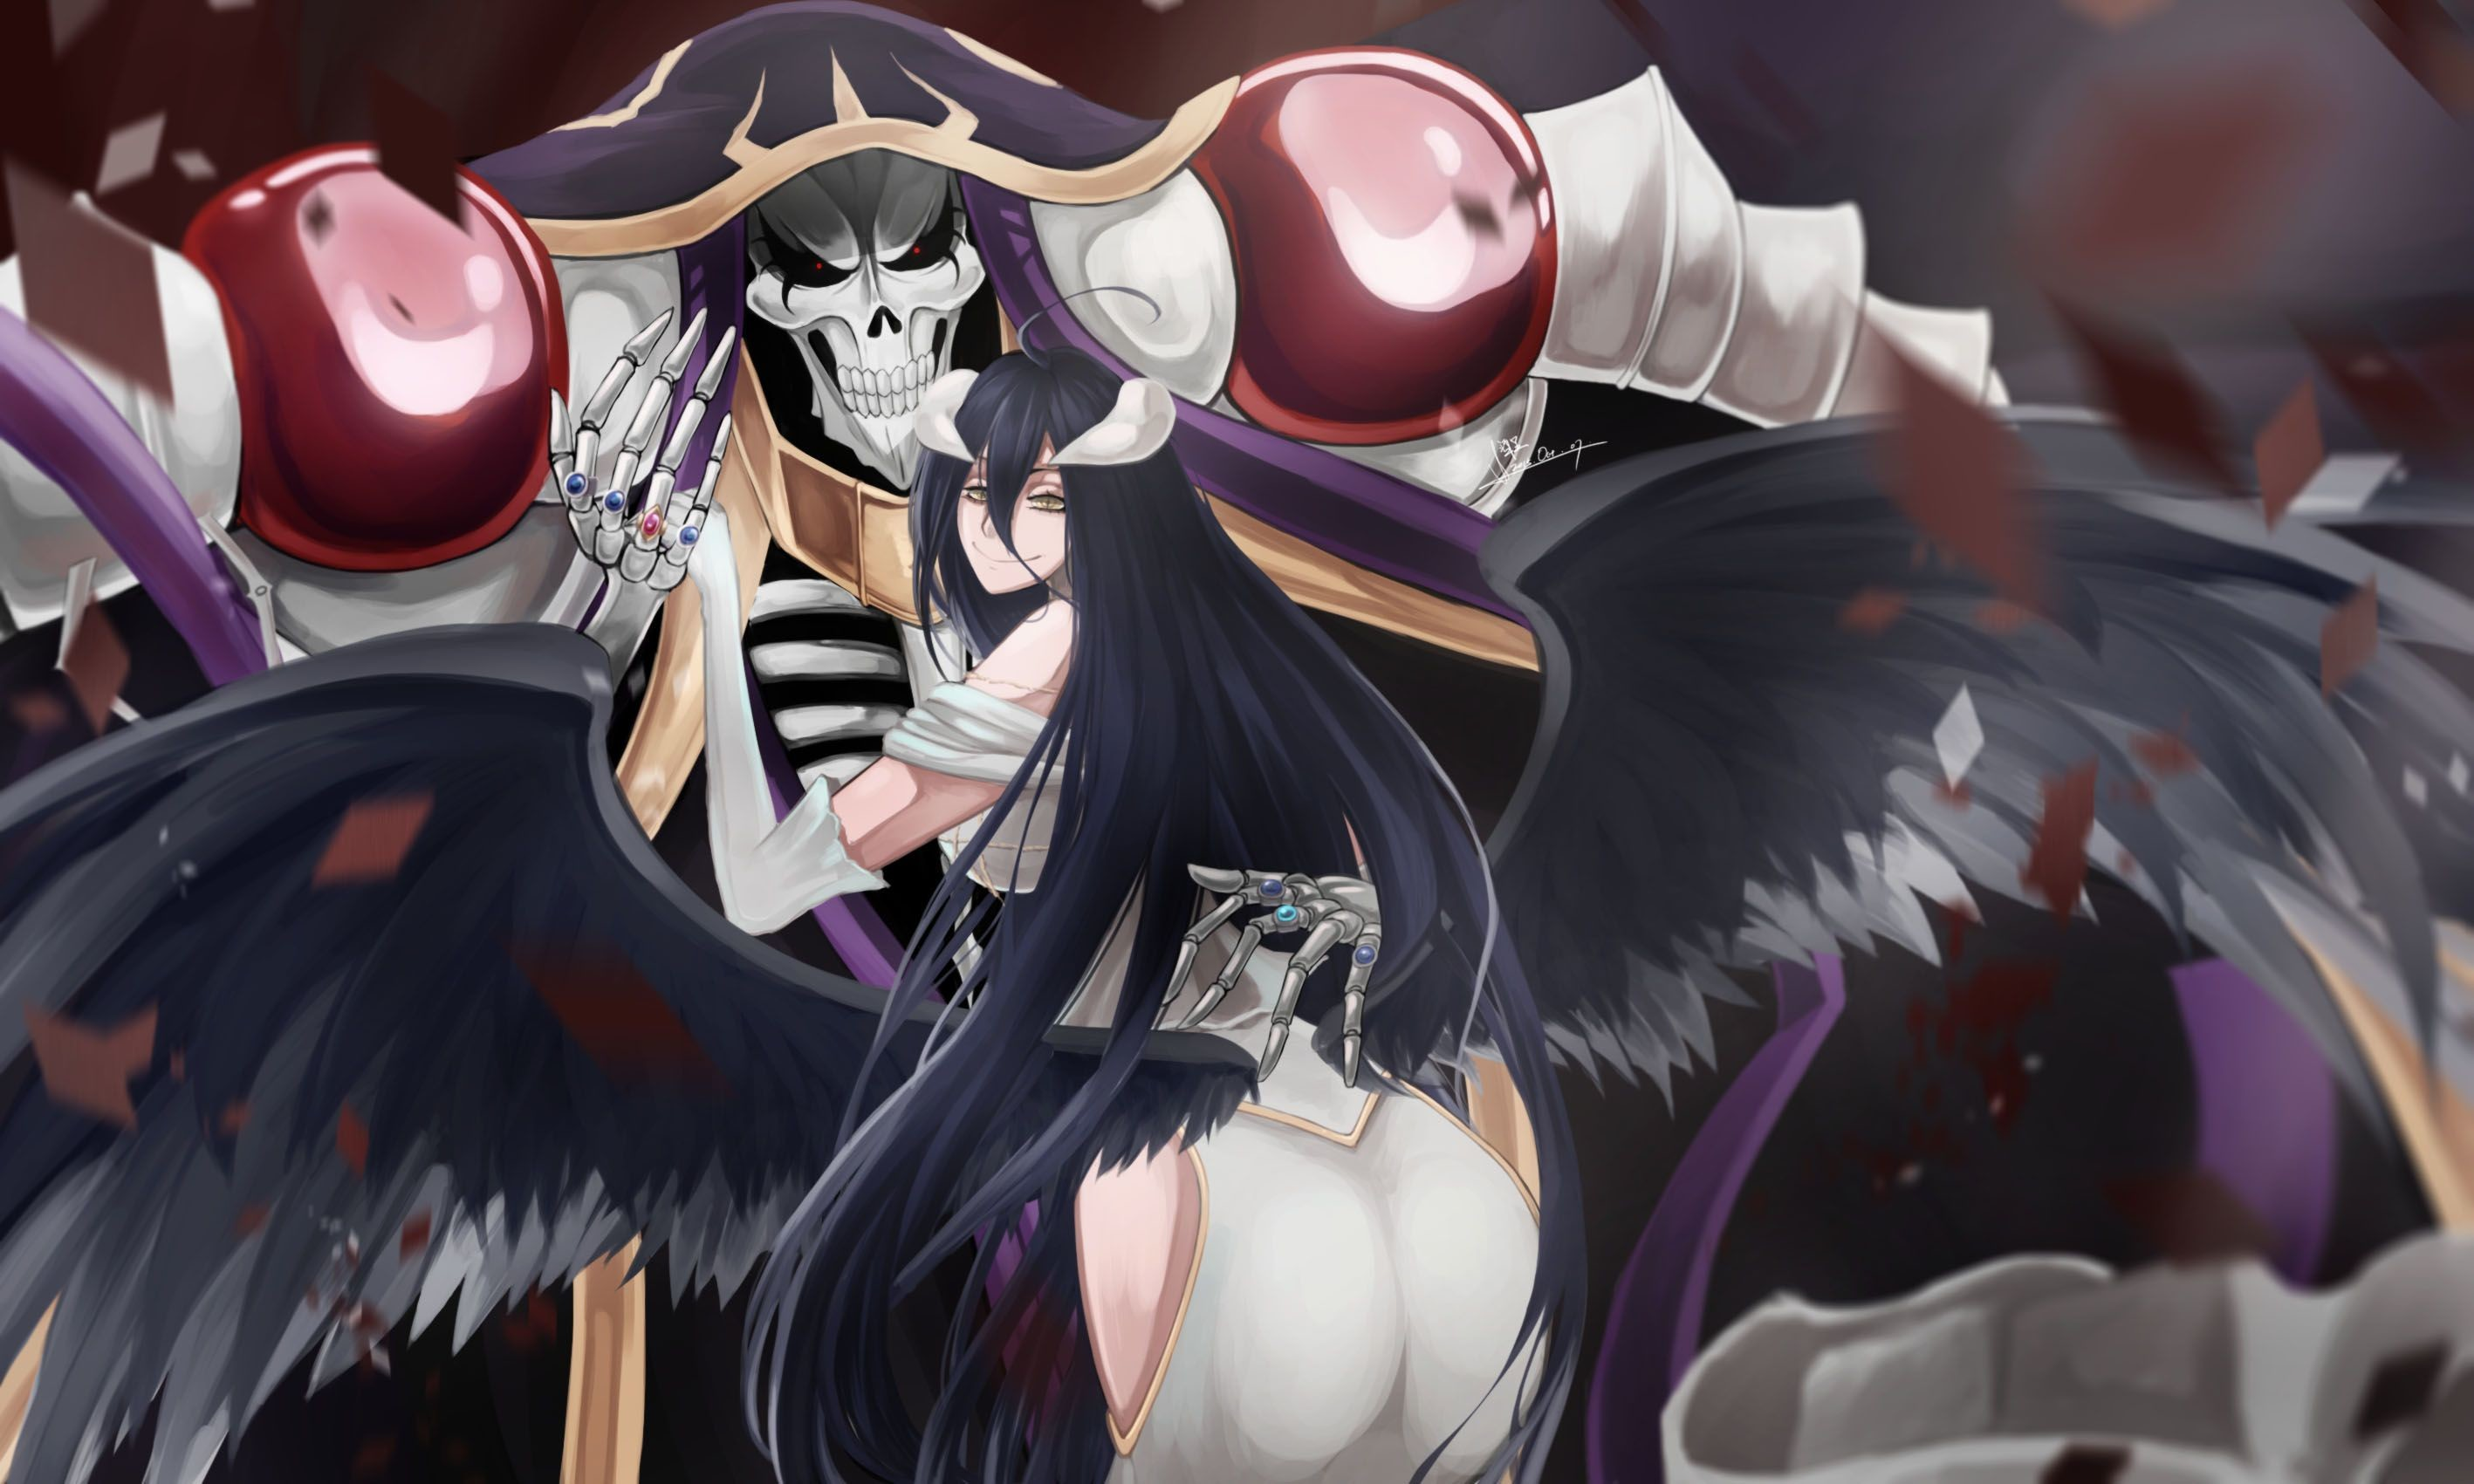 Res: 2835x1701, Anime Overlord Overlord Albedo Ainz Ooal Gown Wallpaper